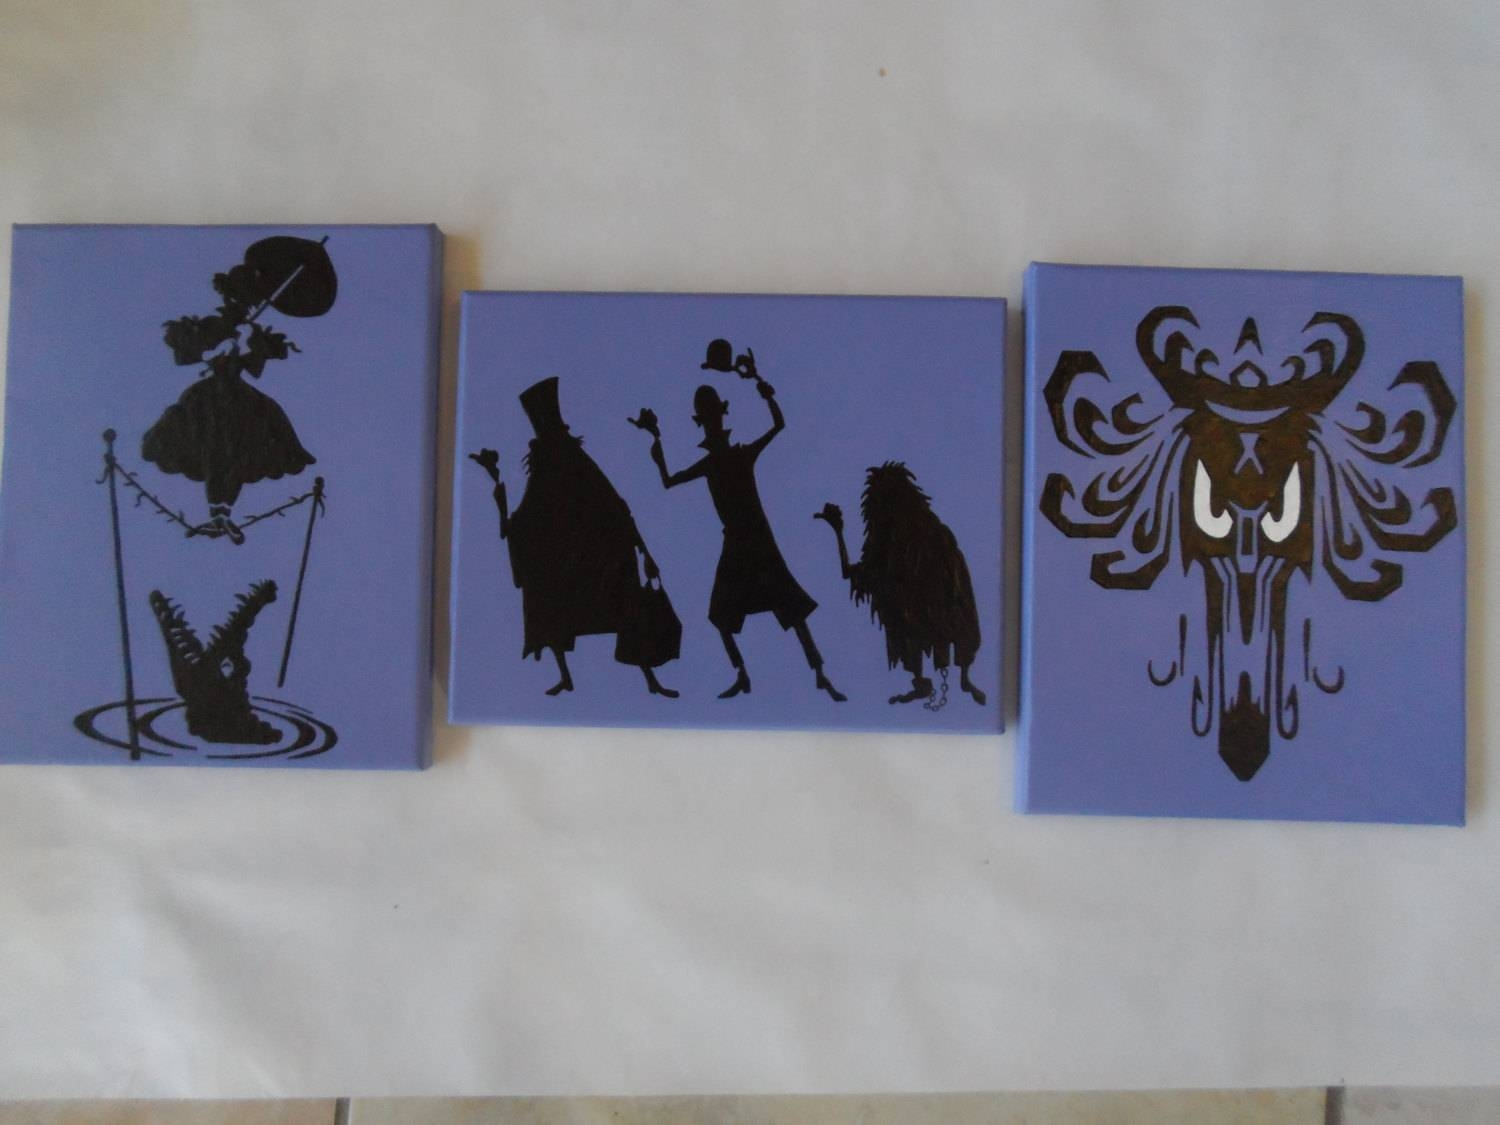 Haunted Mansion Hand Painted Canvas / Wall Art / Set Of 3 Intended For Most Popular Disney Canvas Wall Art (View 14 of 20)